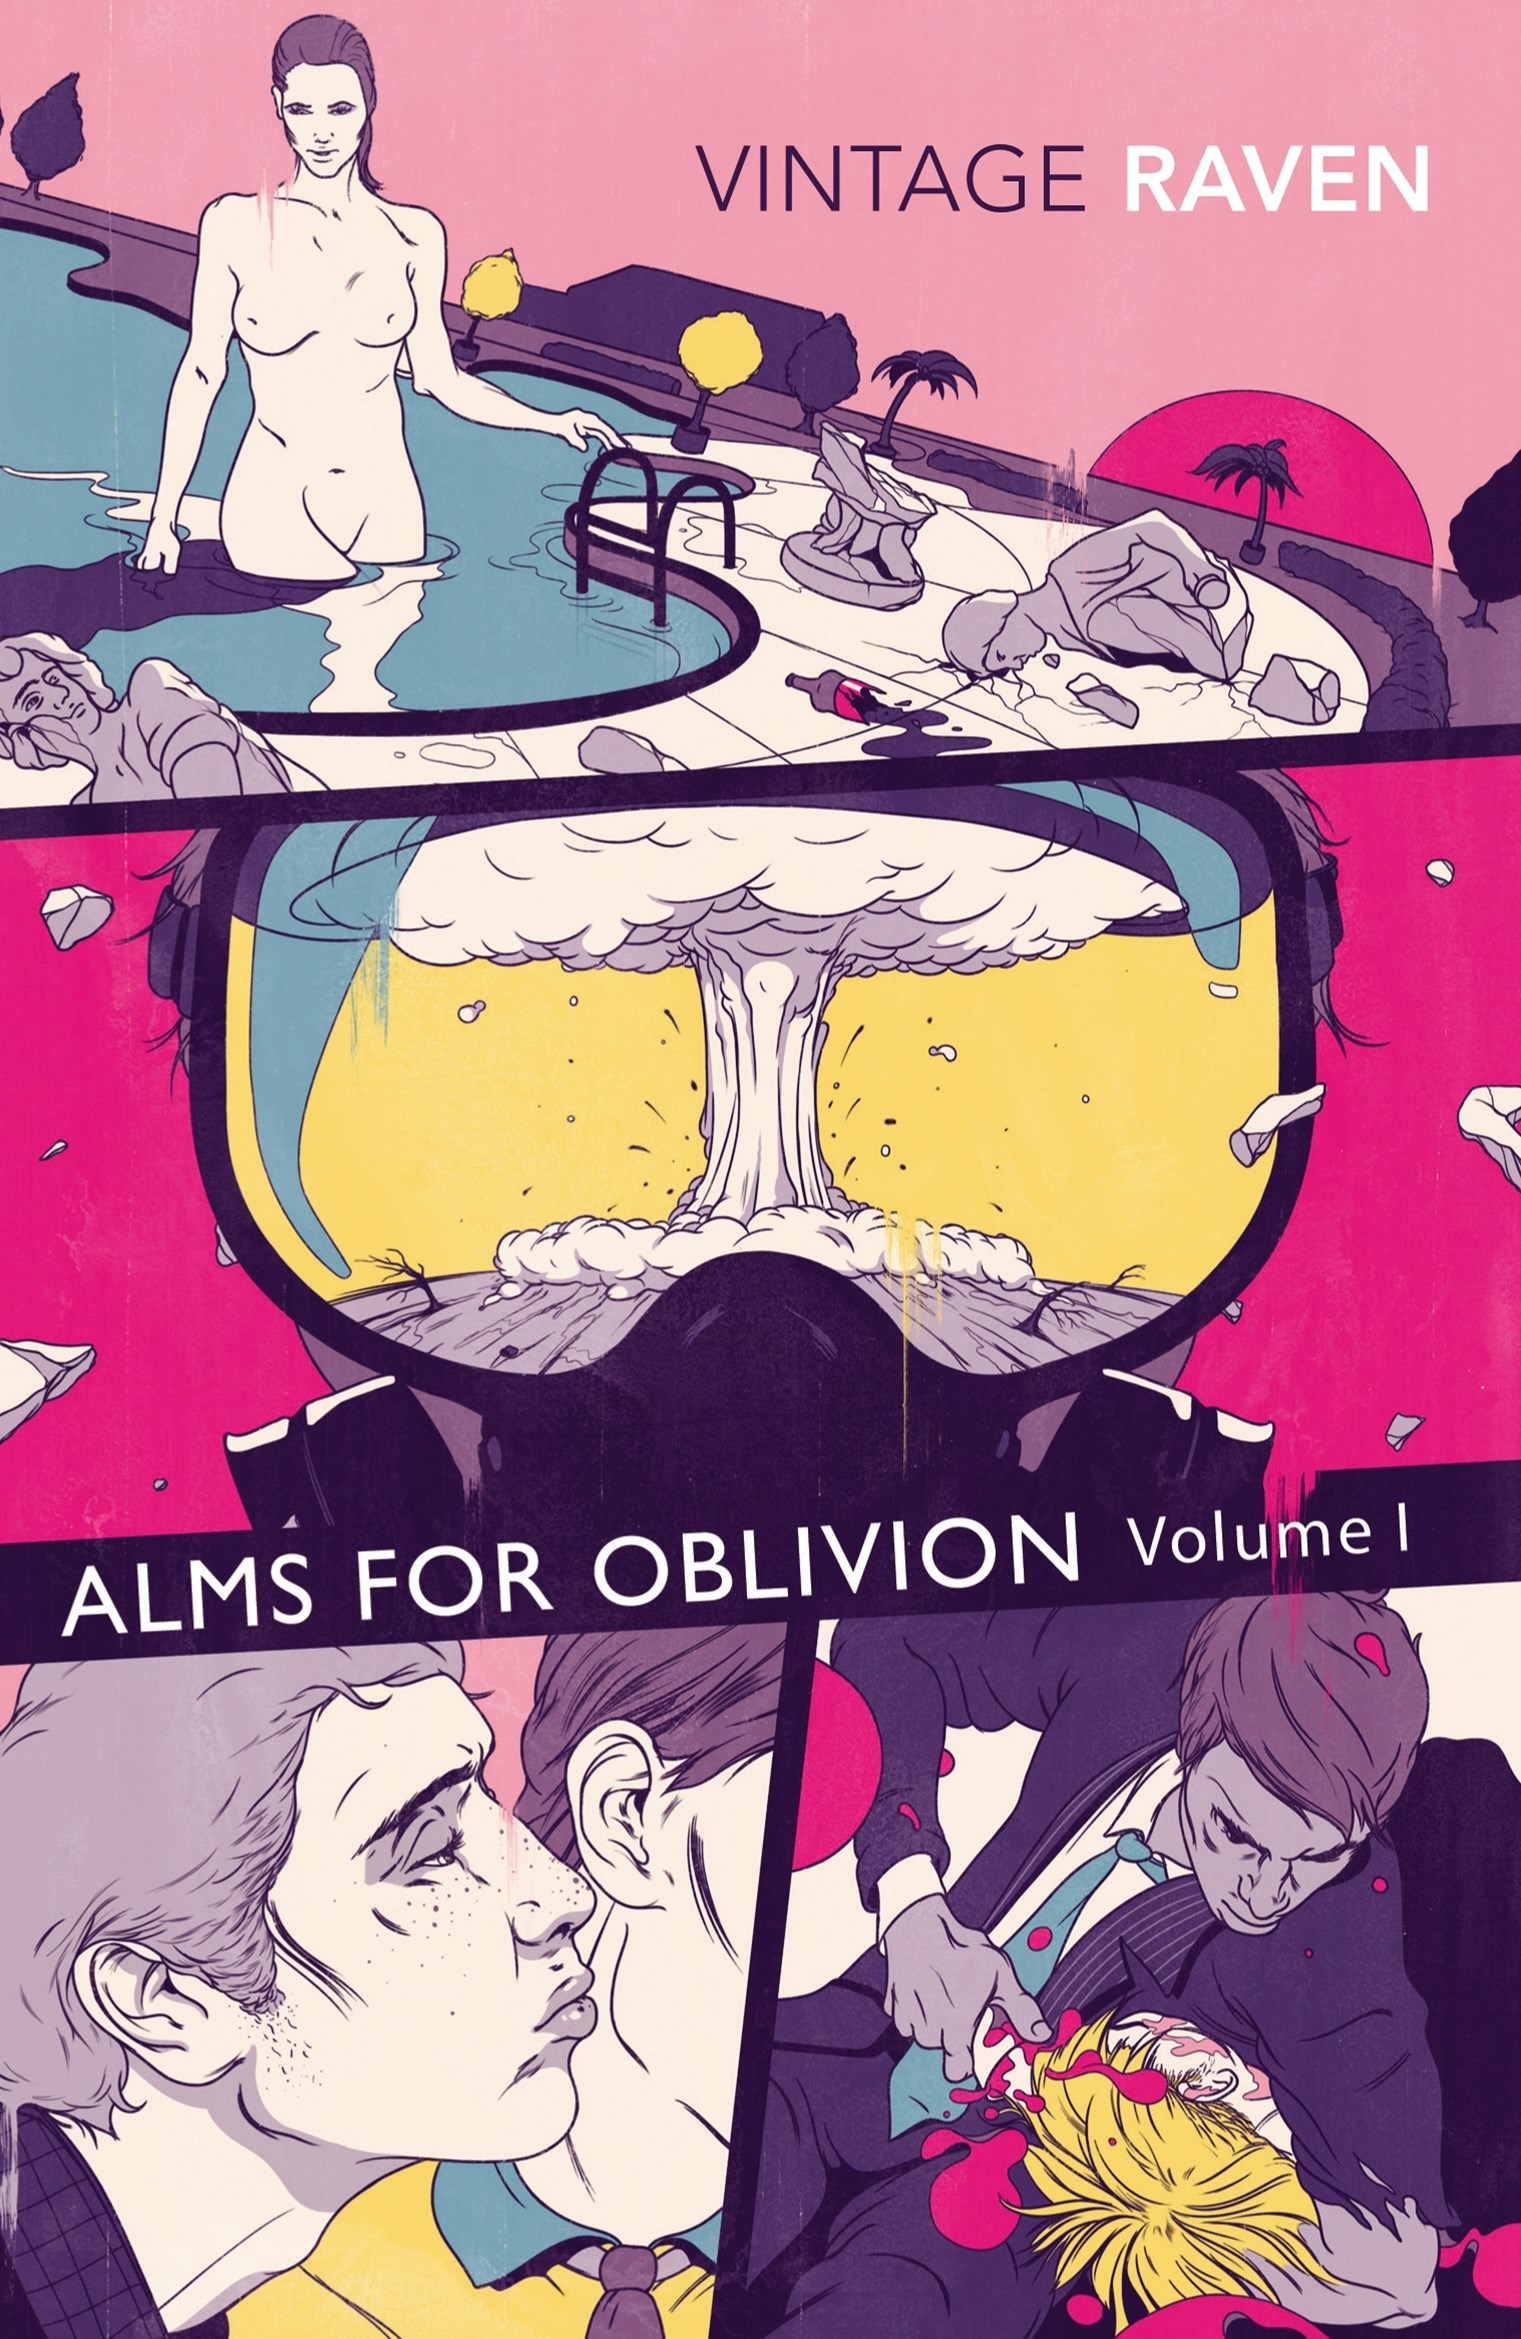 Alms for Oblivion Vol I